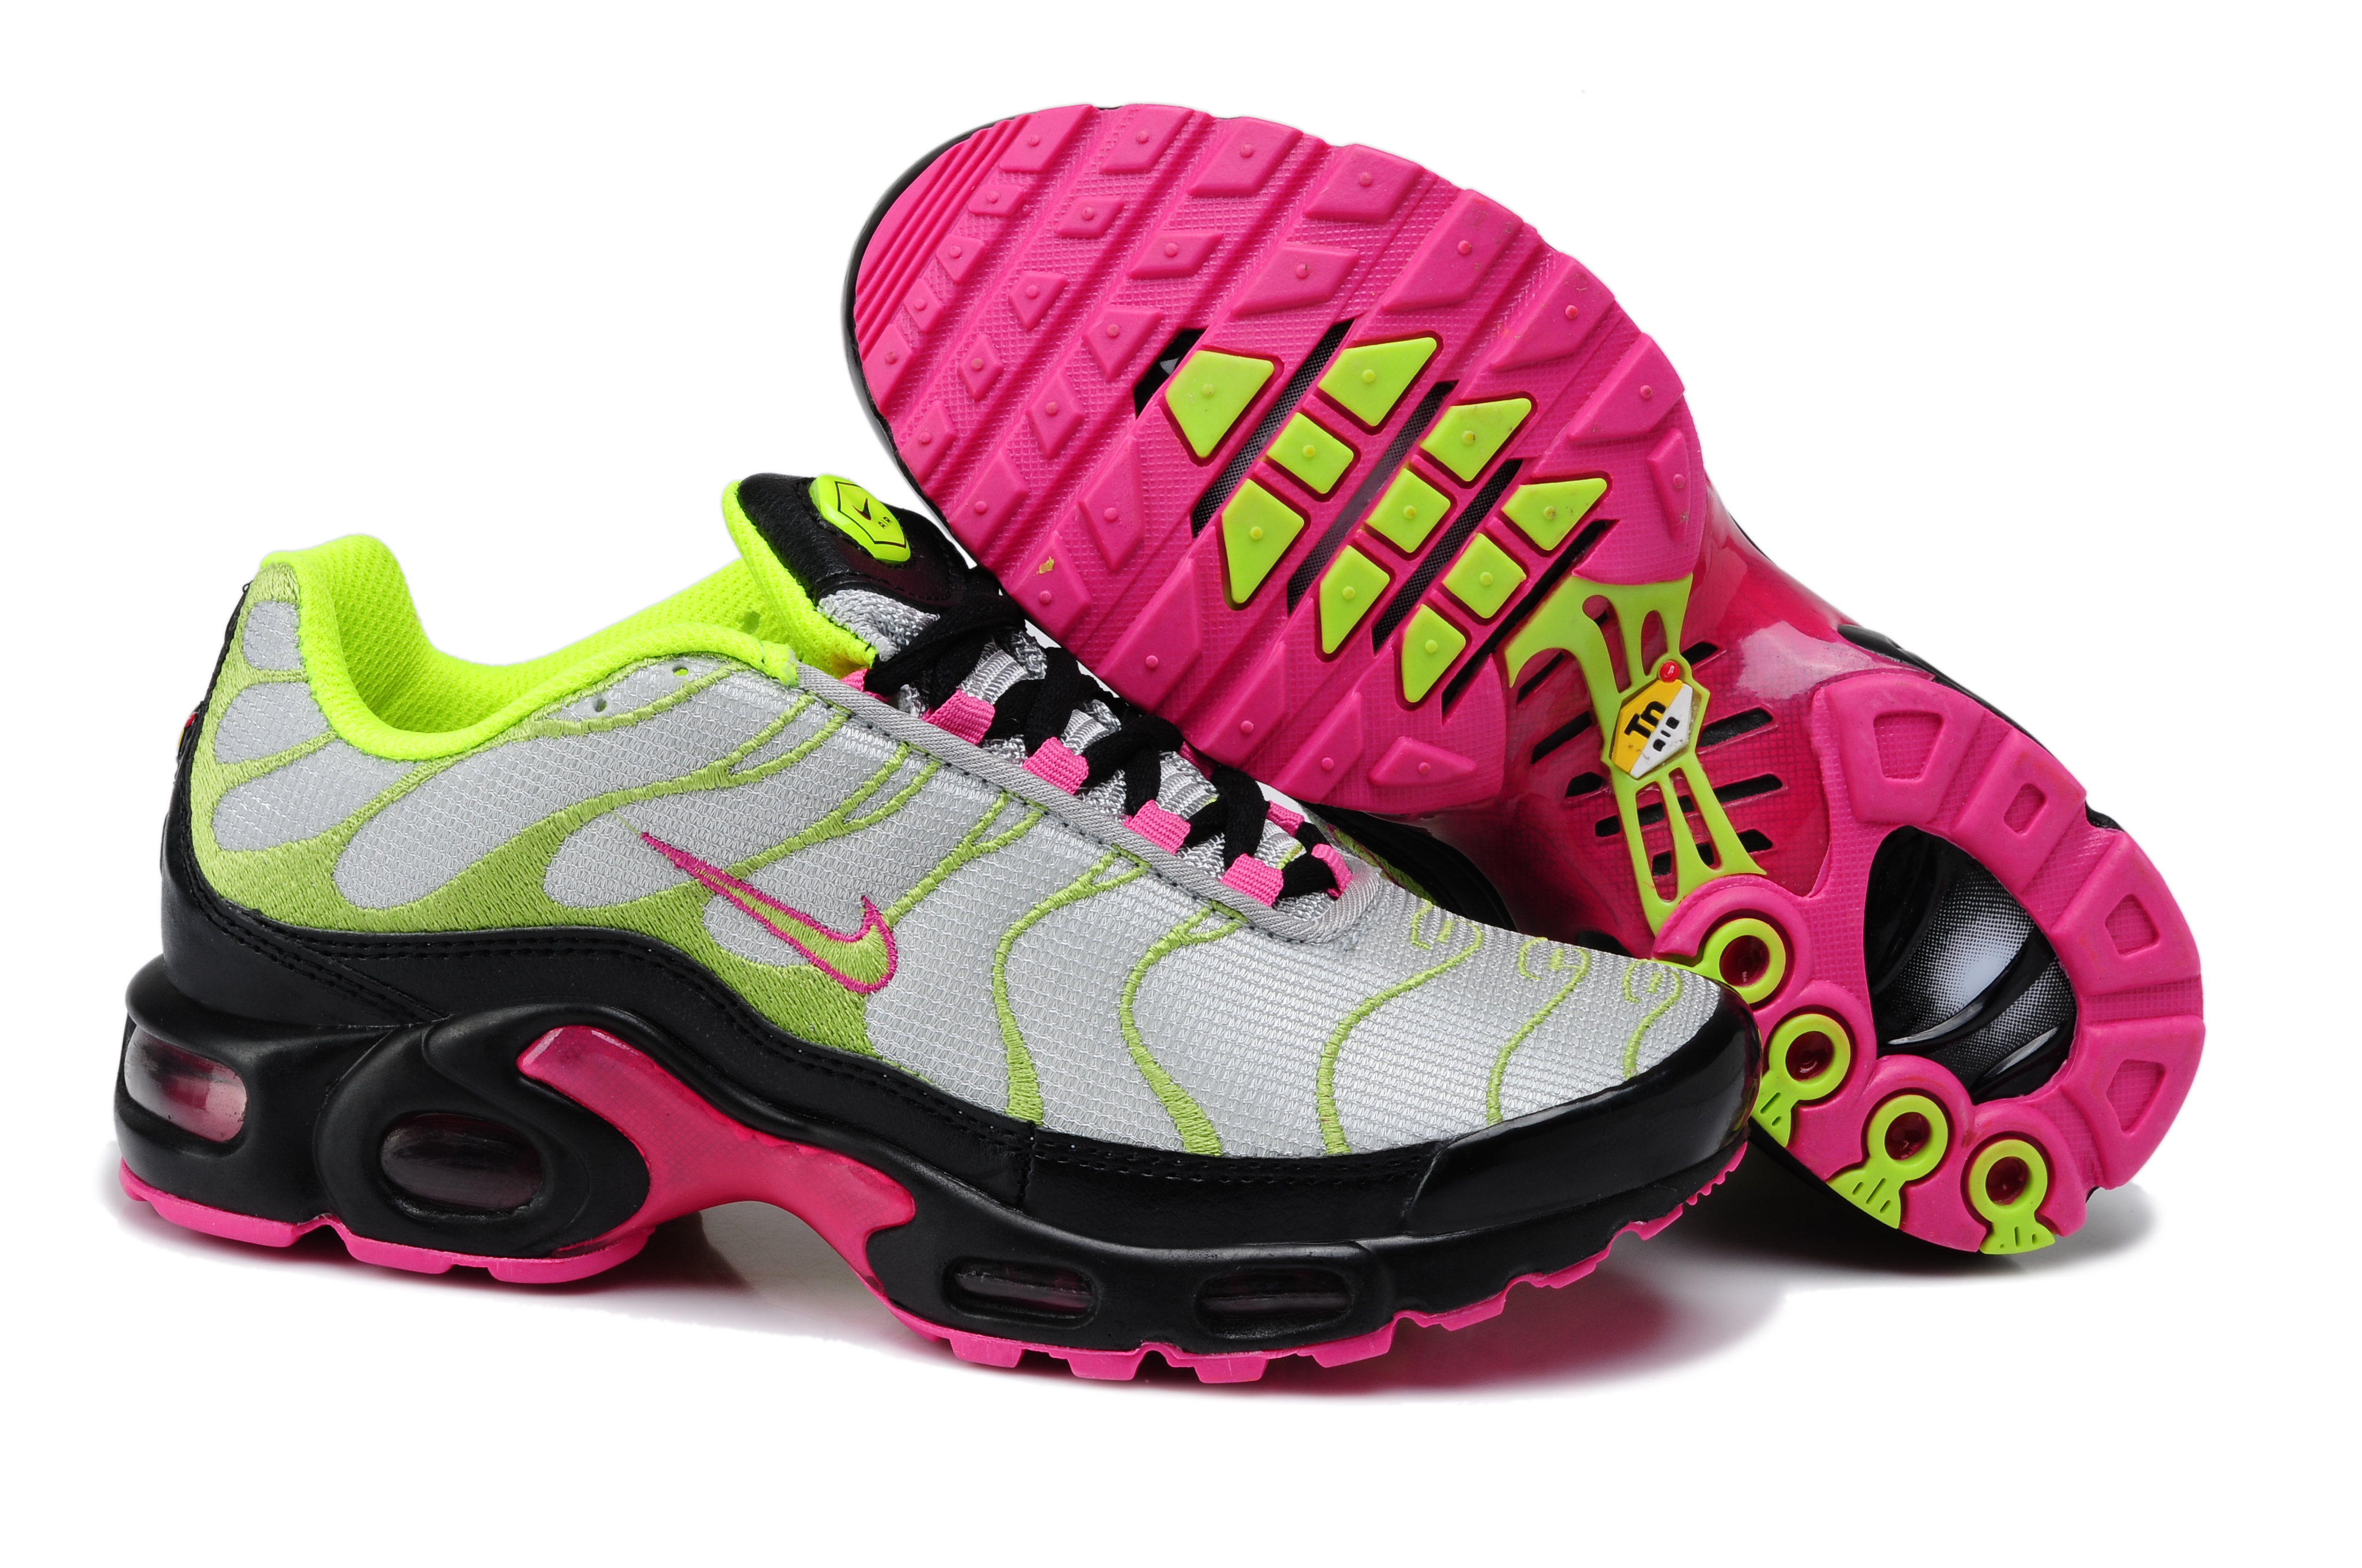 sale retailer bb470 c91a7 achat nike air max tn requin - www.allow-project.eu